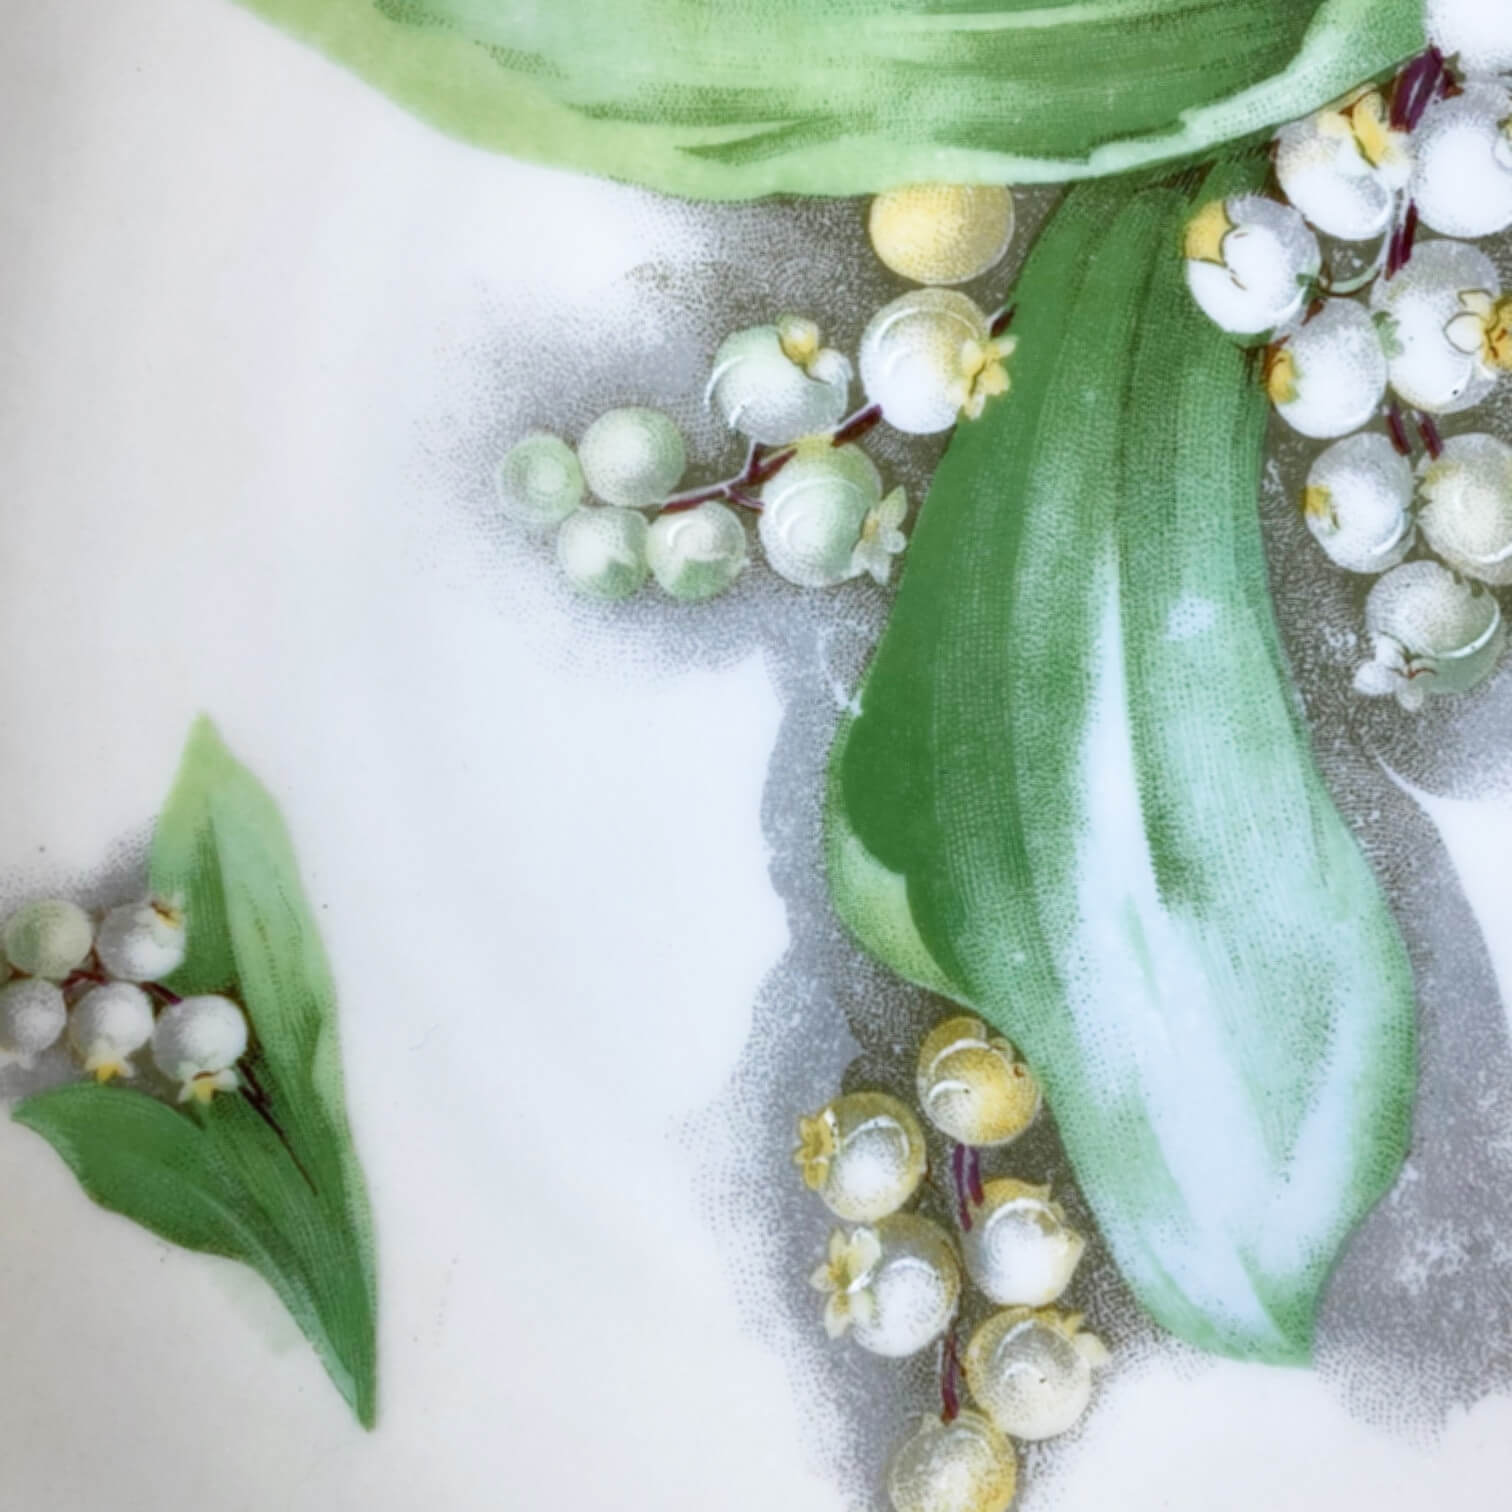 Antique Handpainted Porcelain Plate Featuring Lily of the Valley - Made by O & EG Royal Austria - Painted by Laporte circa 1899-1918